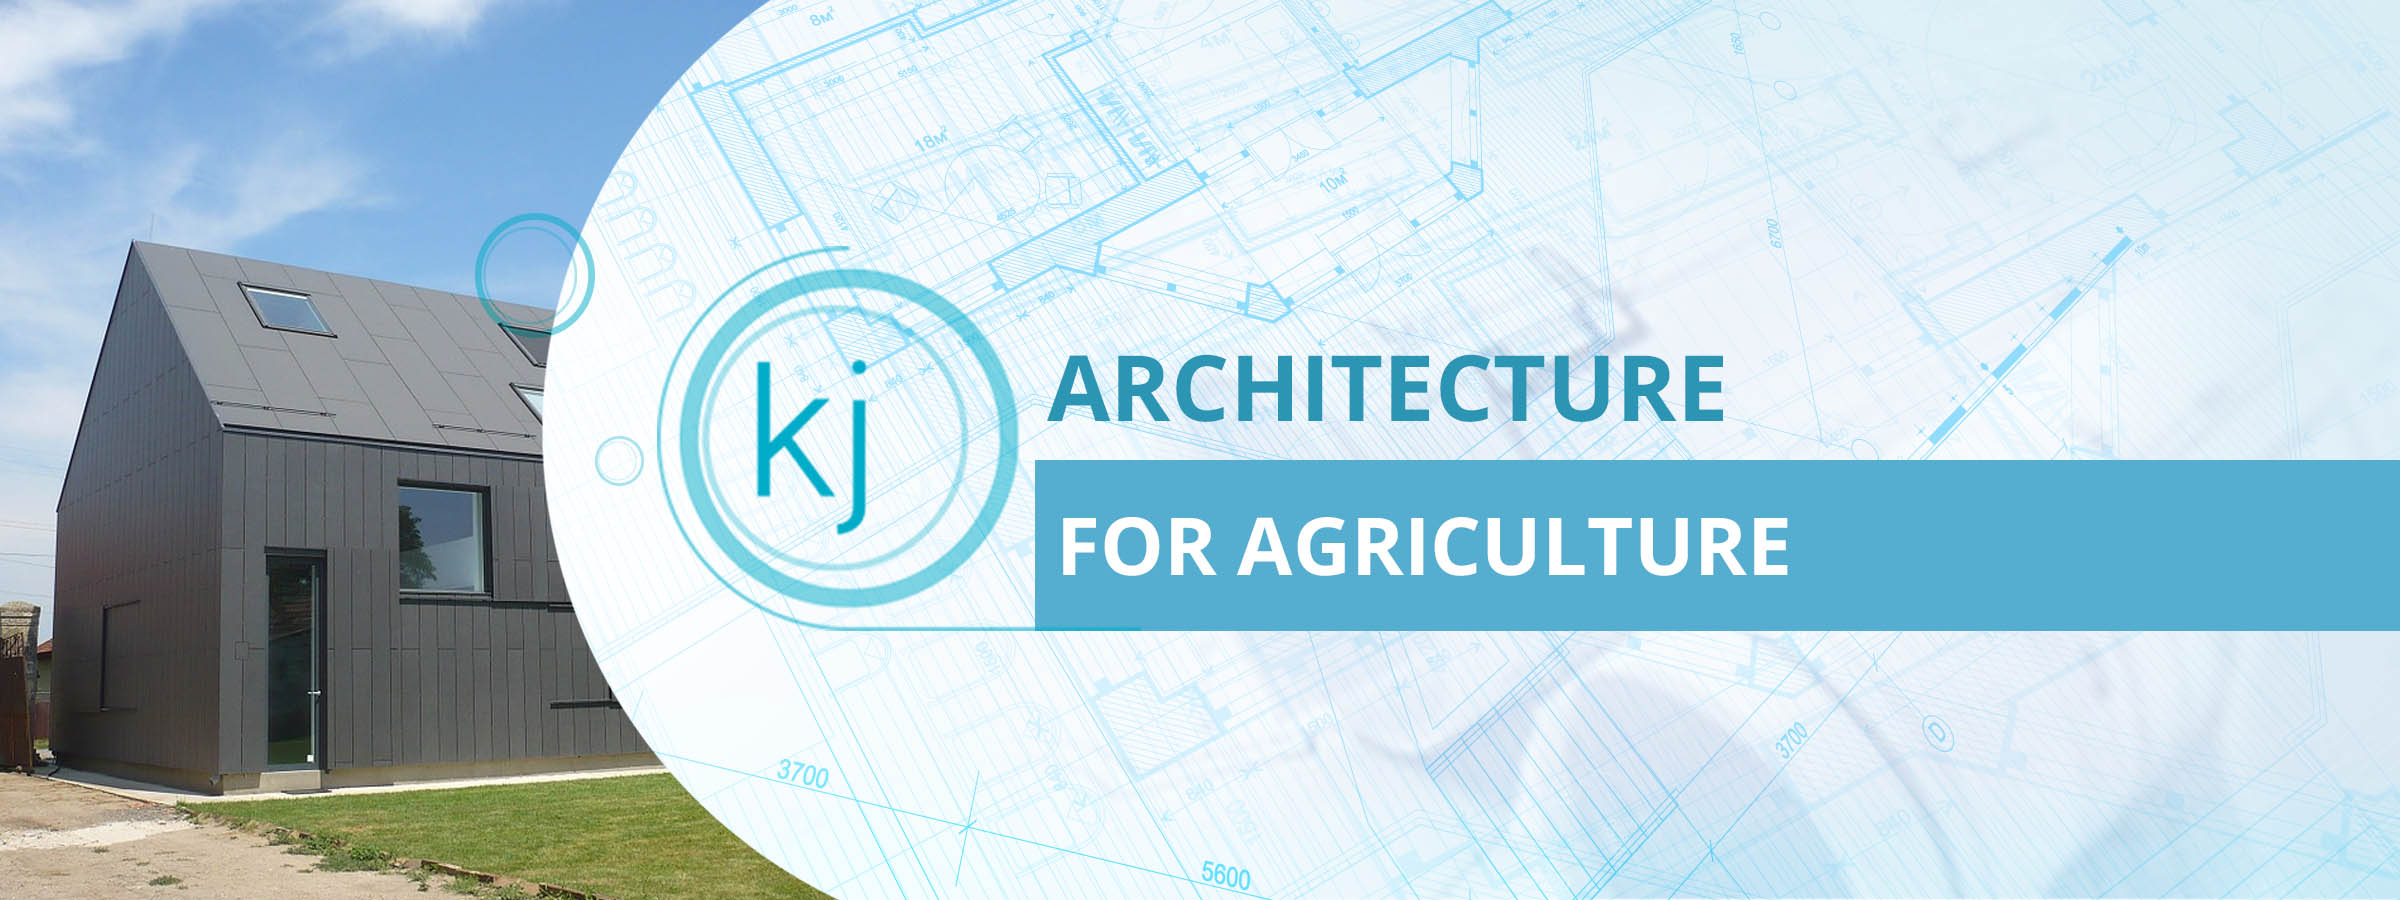 Architecture for argriculture